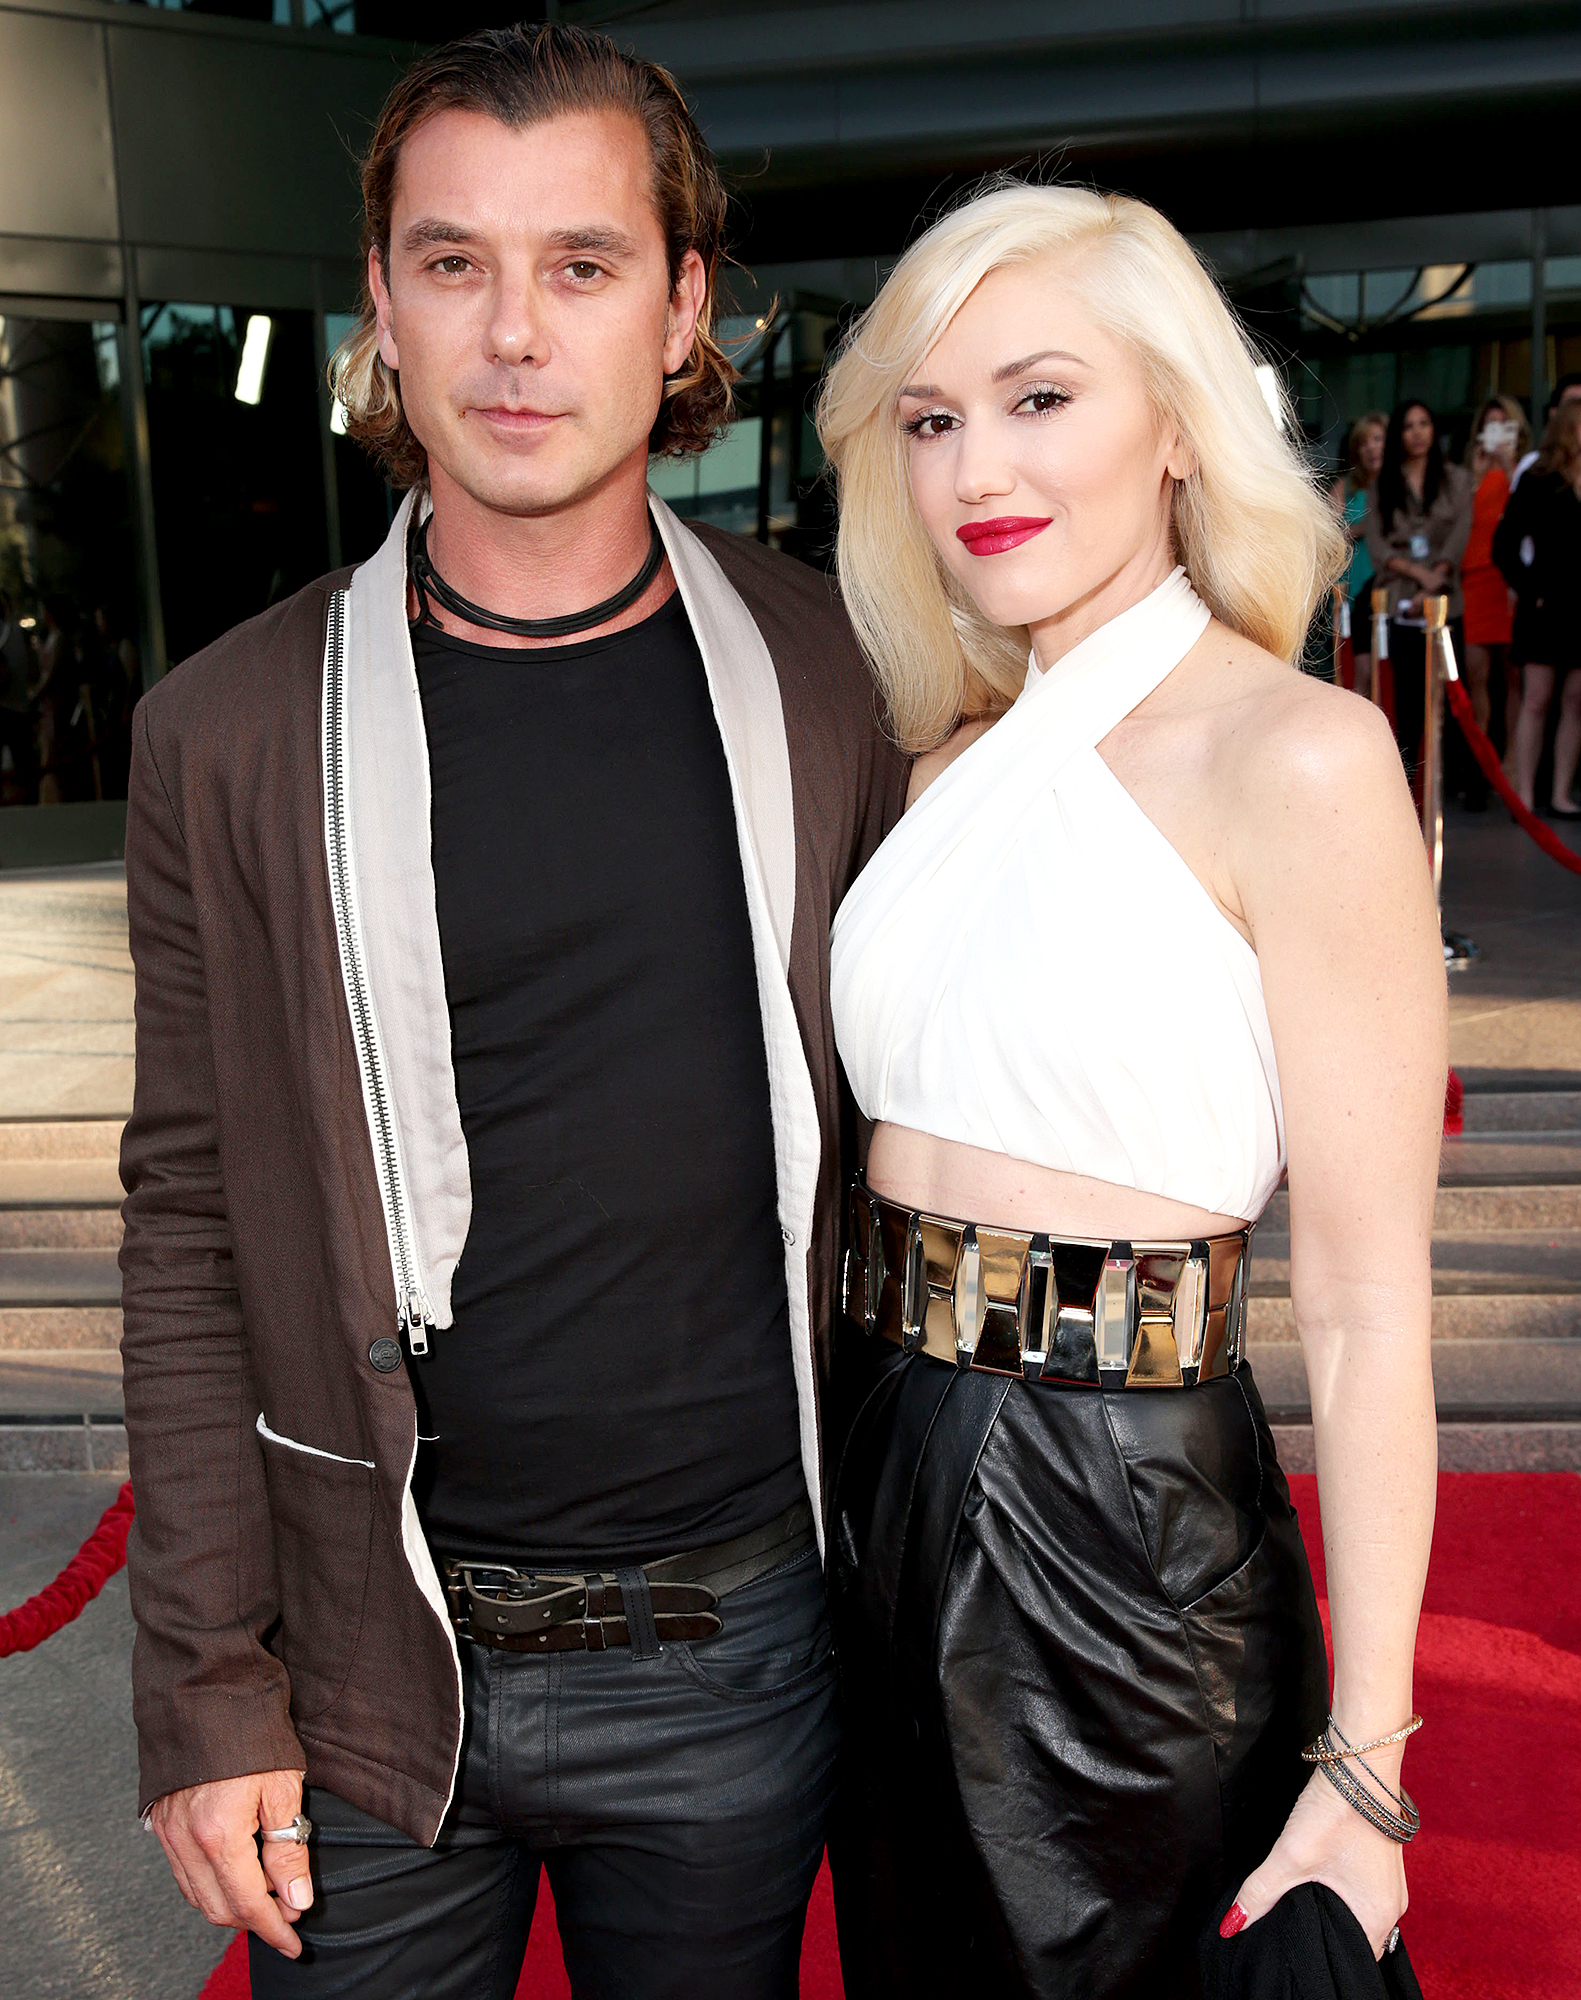 Gwen-Stefani-and-Gavin-Rossdale-coparenting